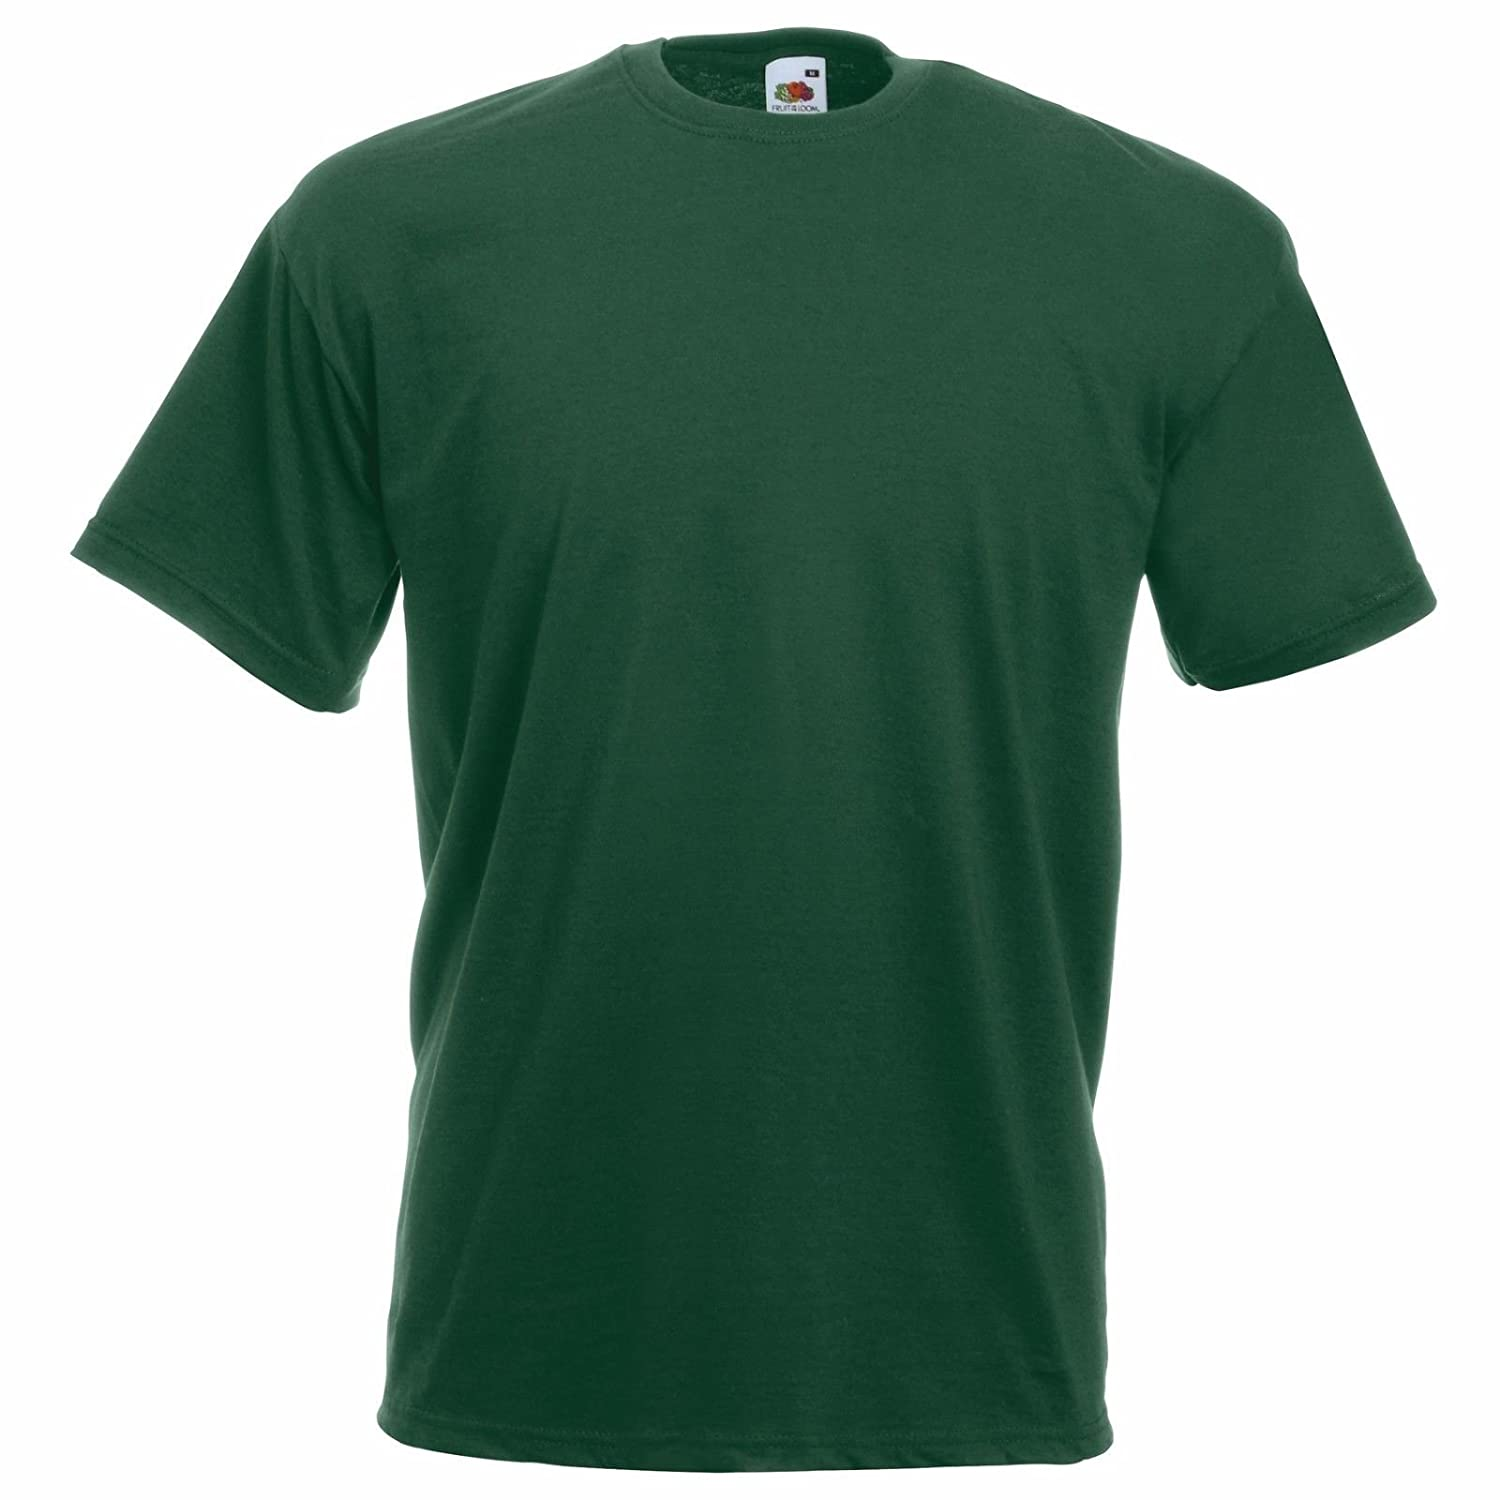 Vert Bouteille L Fruit of the Loom - T-Shirt - Moderne - Homme